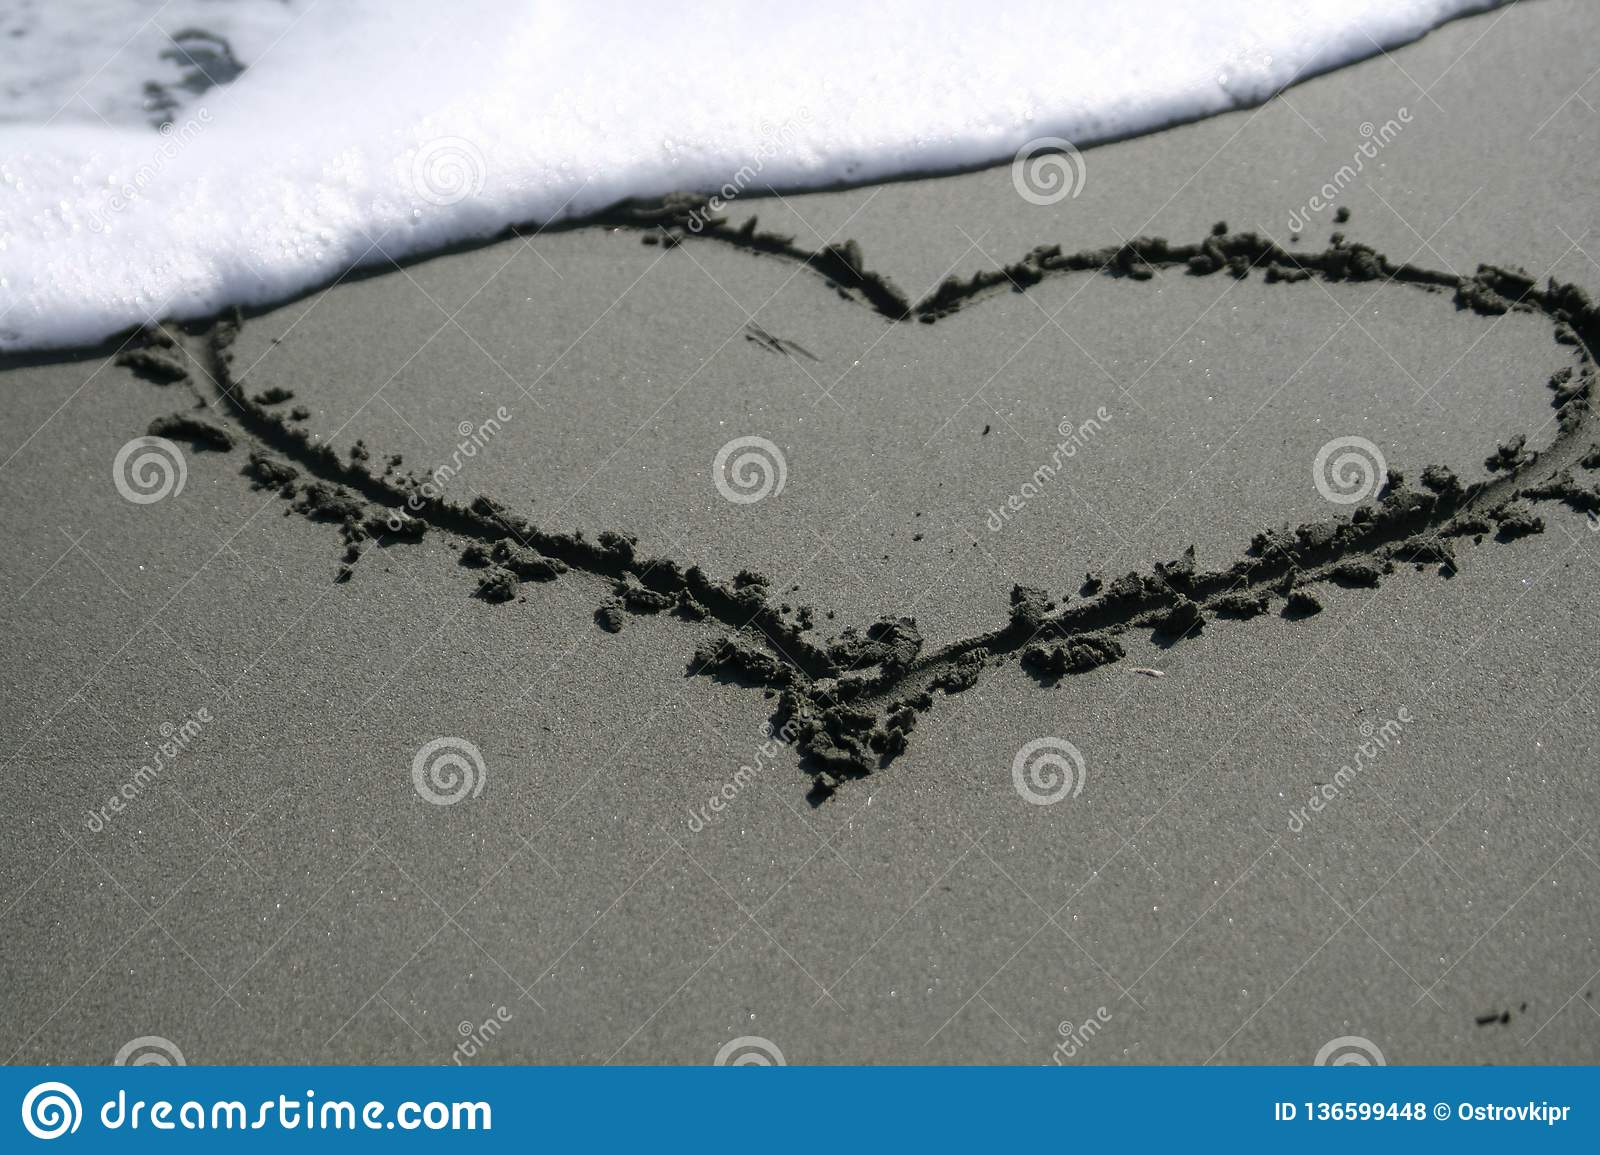 Heart shape drawing on the sand